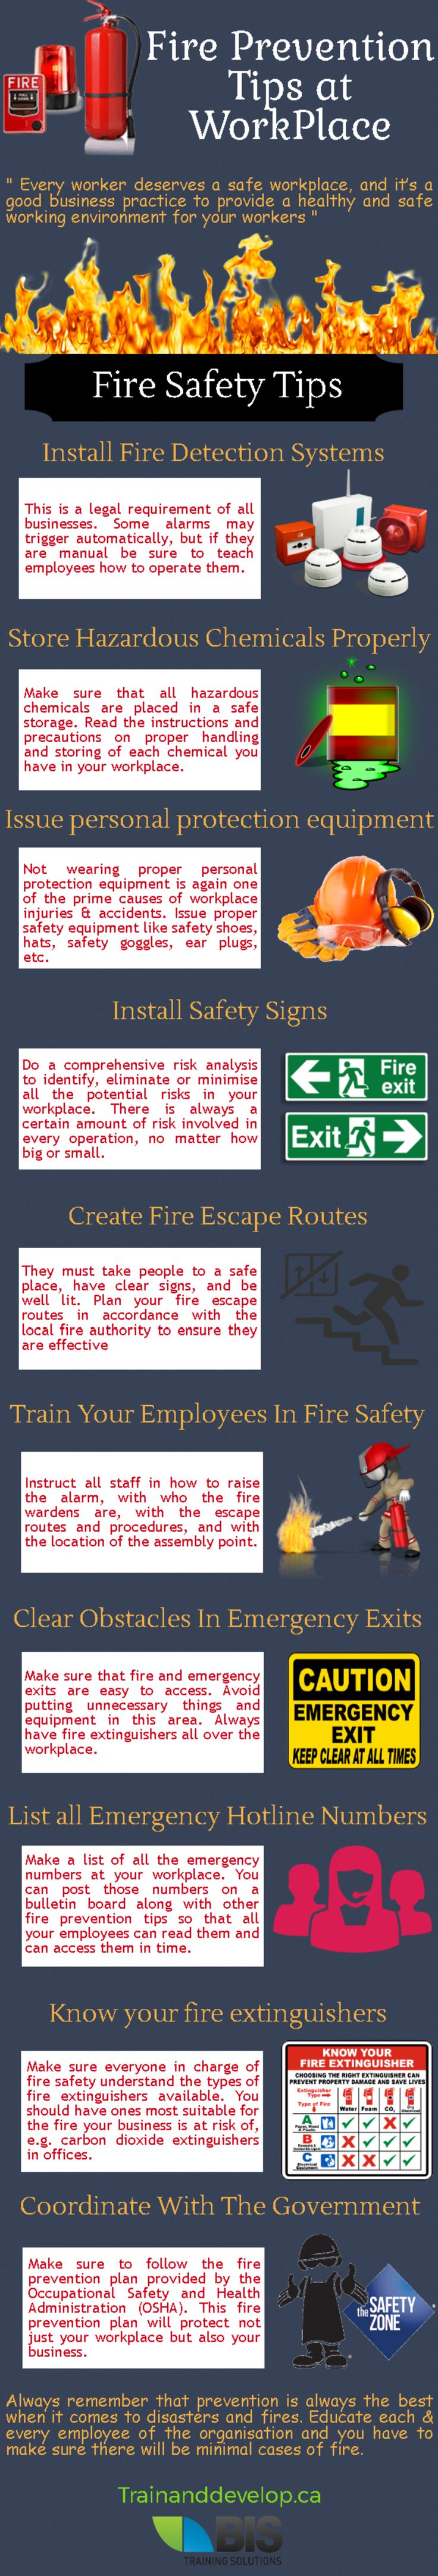 Top 5 Fire Prevention Tips at Workplace #firesafety #prevention #tips